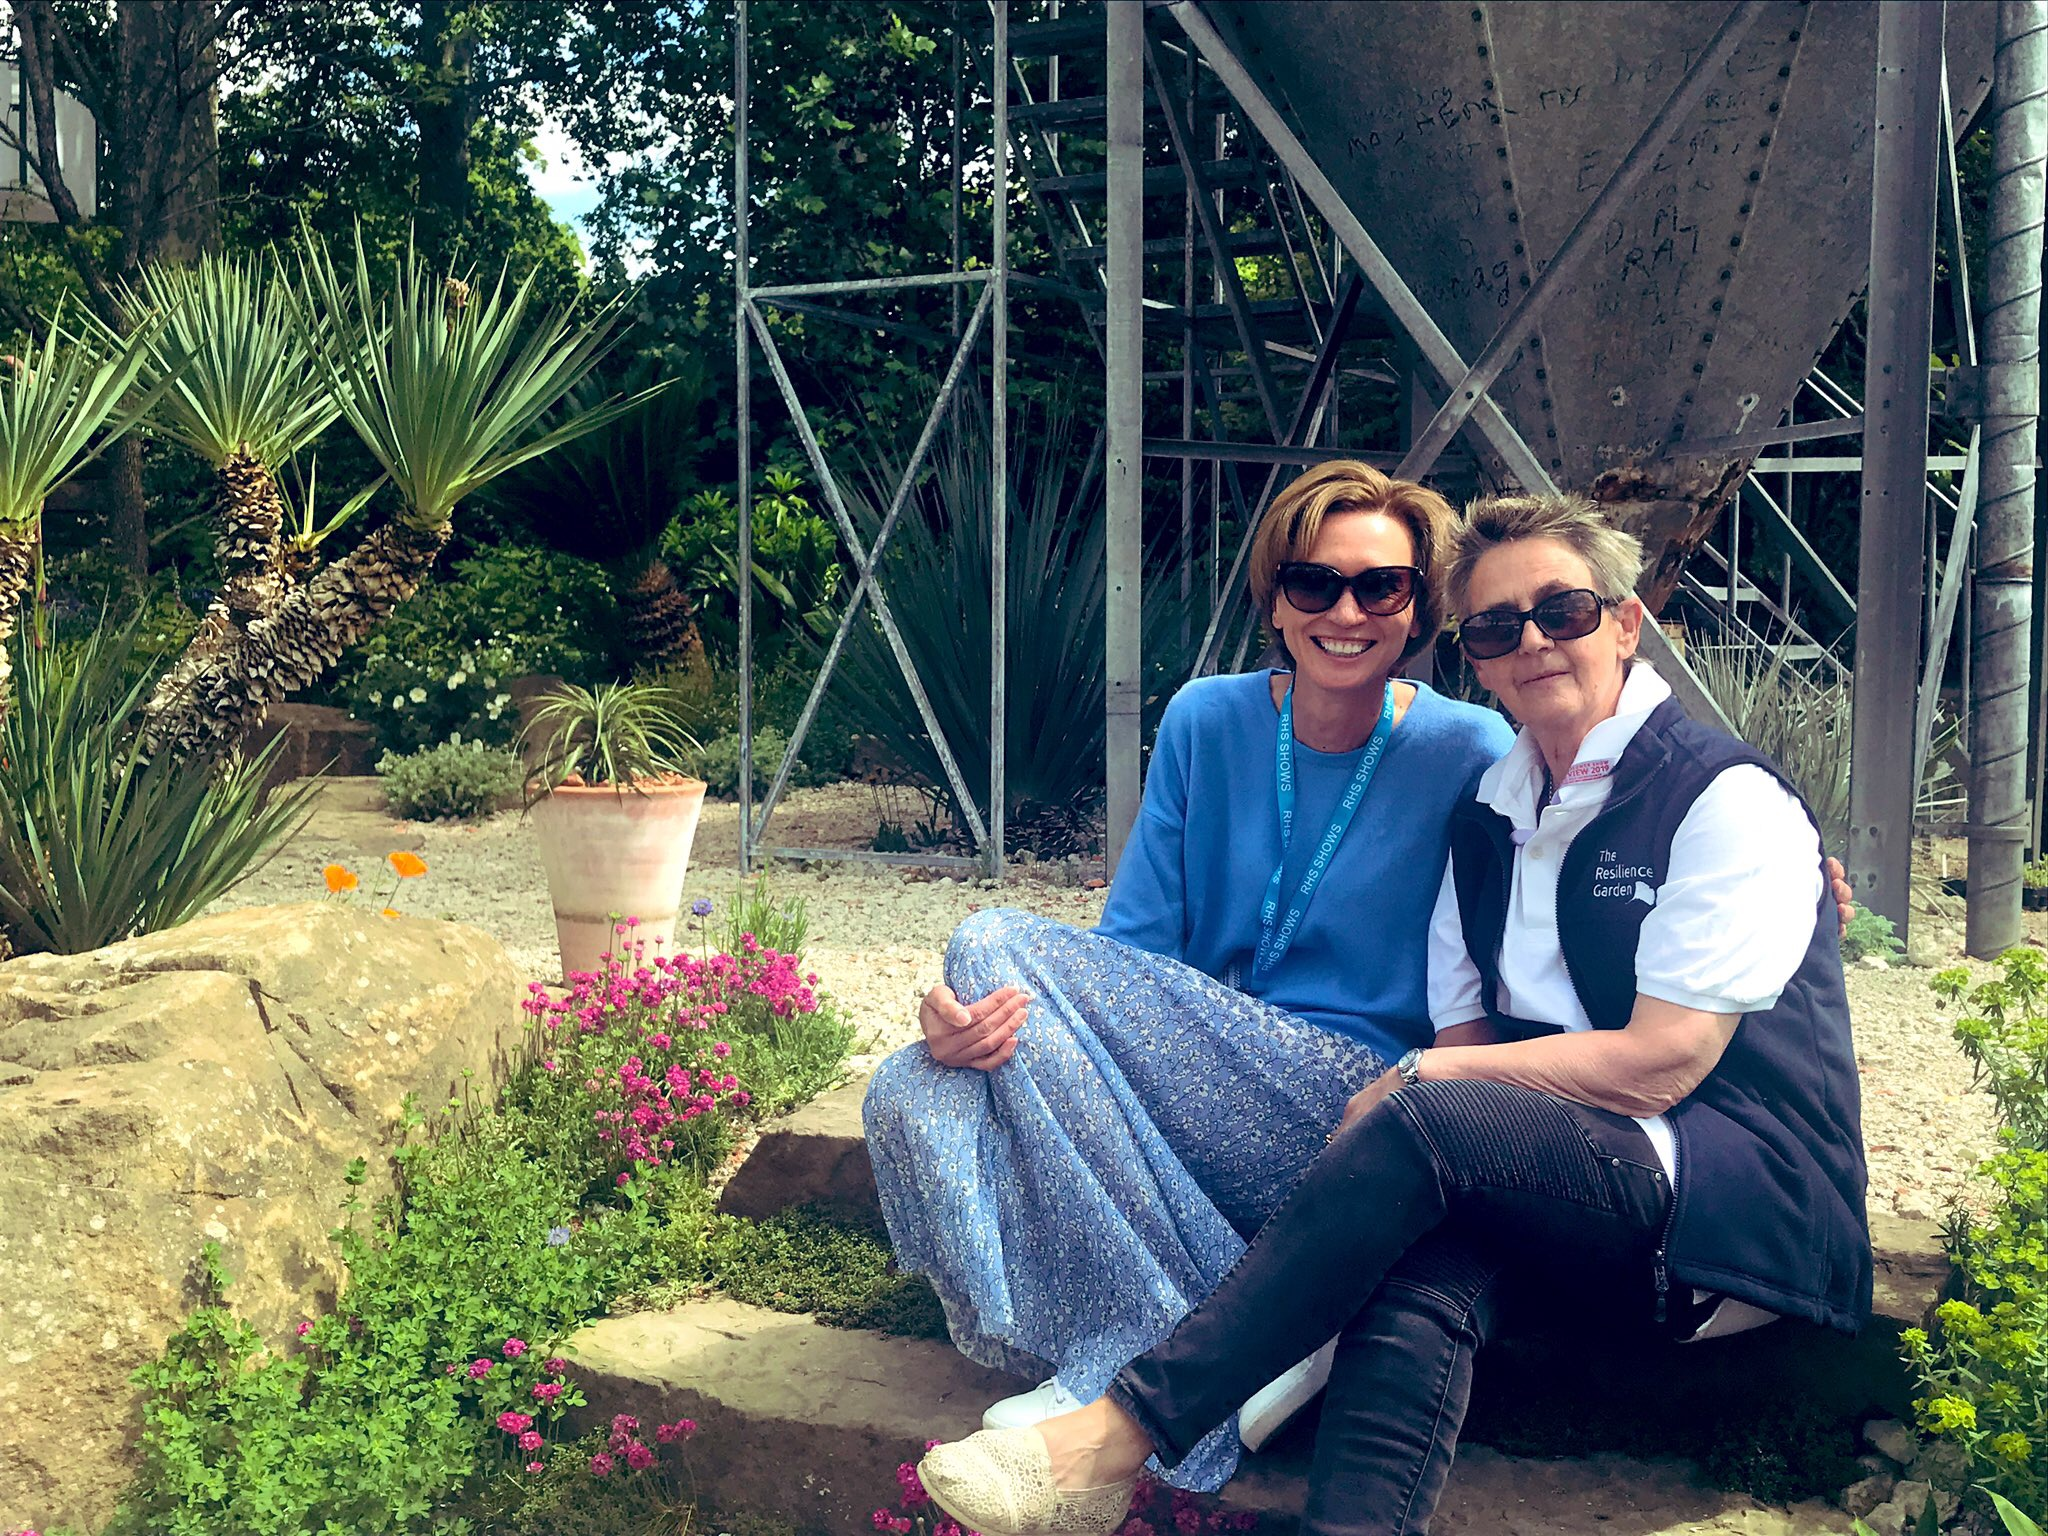 Gillian Goodson (left) with Sarah Eberle  at  The Resilience Garden, RHS Chelsea Flower Show 2019  –  Gold medal and Best Construction Award